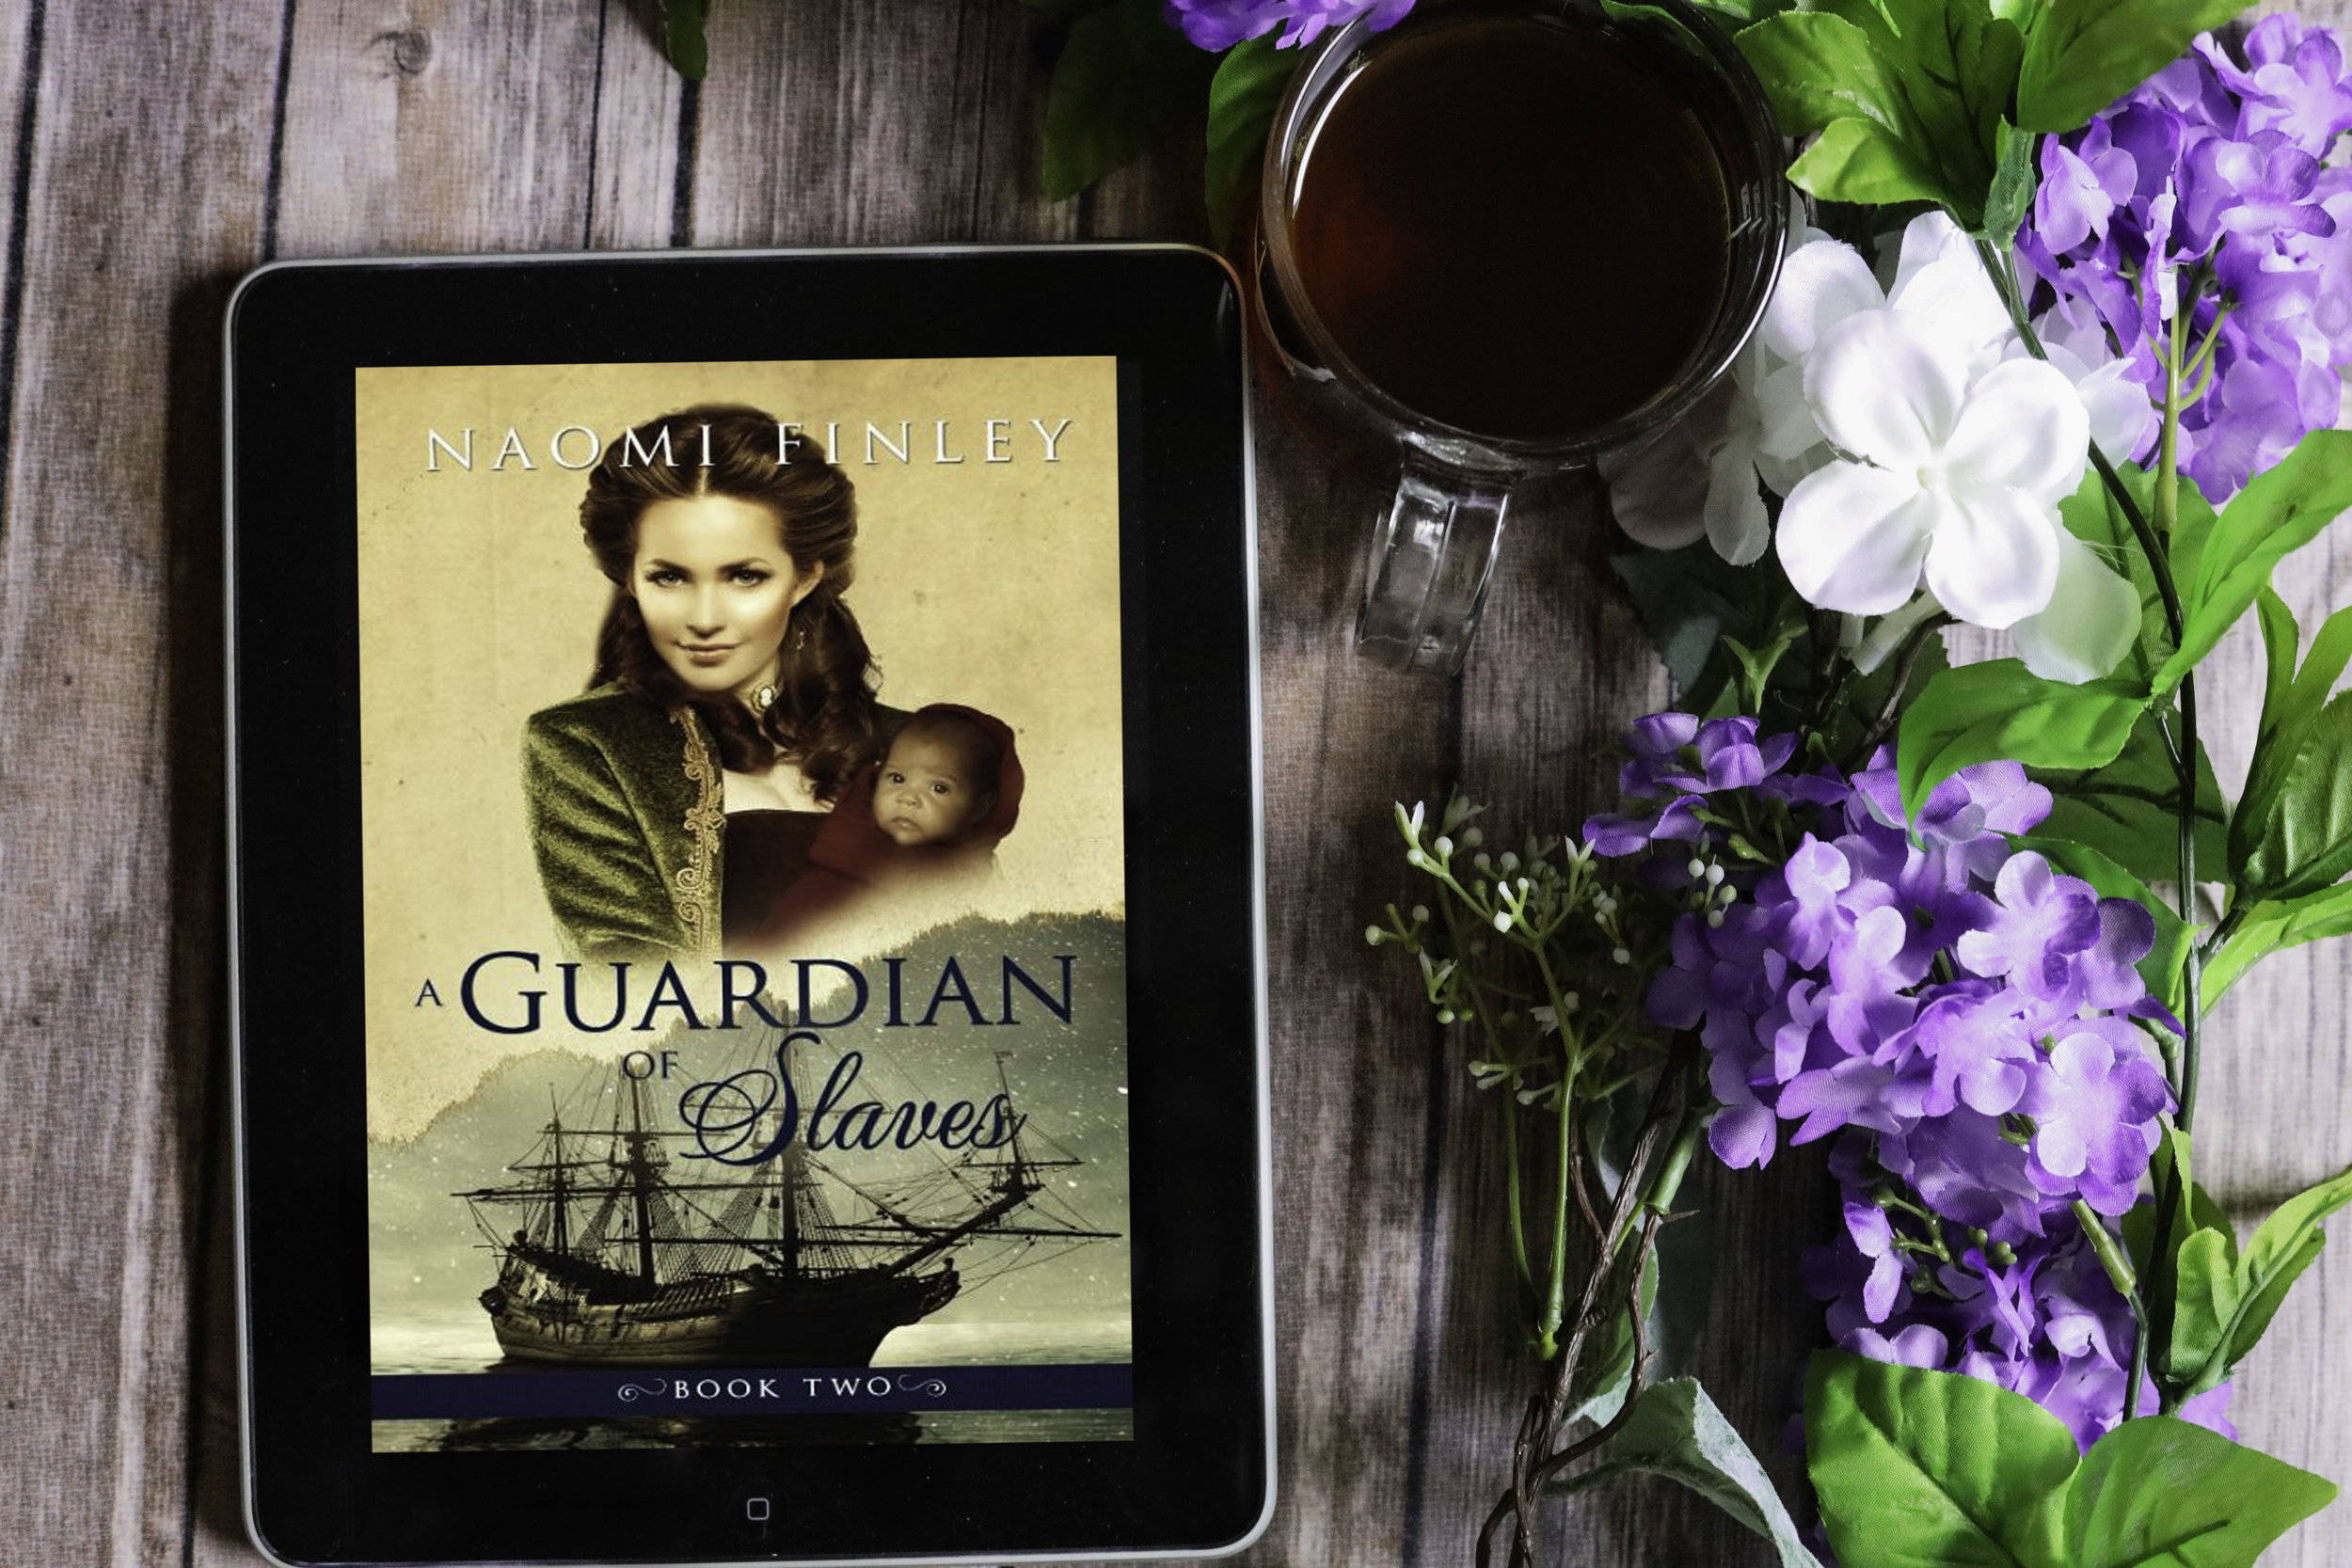 a guardian of slaves by naomi finley